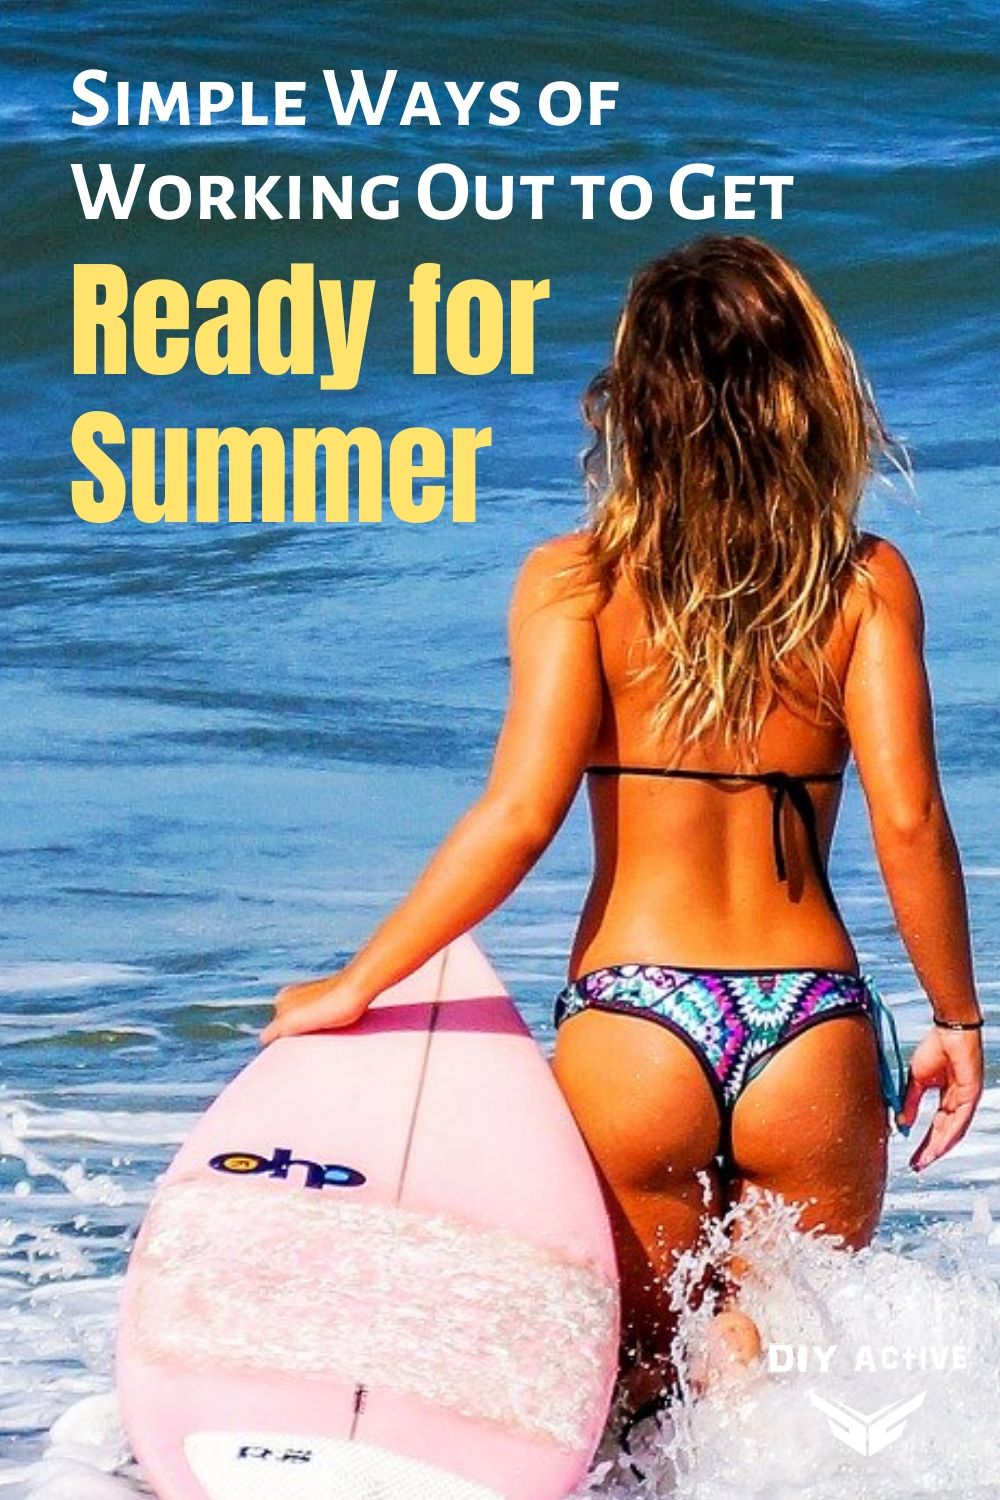 Simple Ways of Working Out to Get Ready for Summer